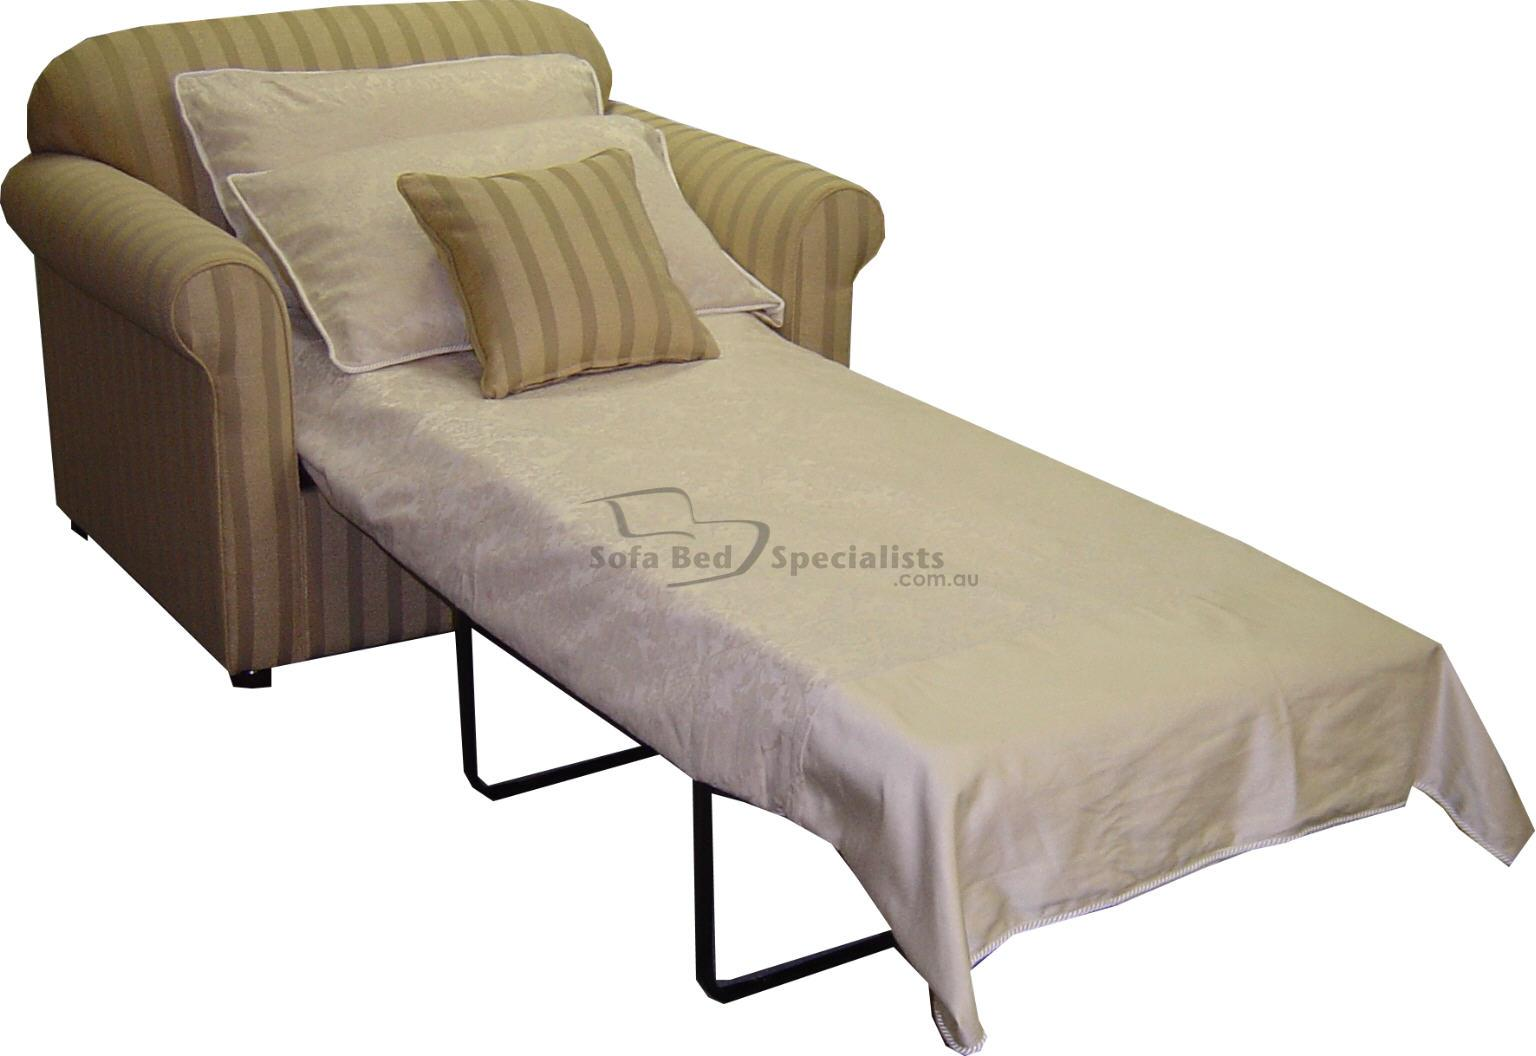 fold out chair beds swivel with tablet arm single sofa bed sofabeds